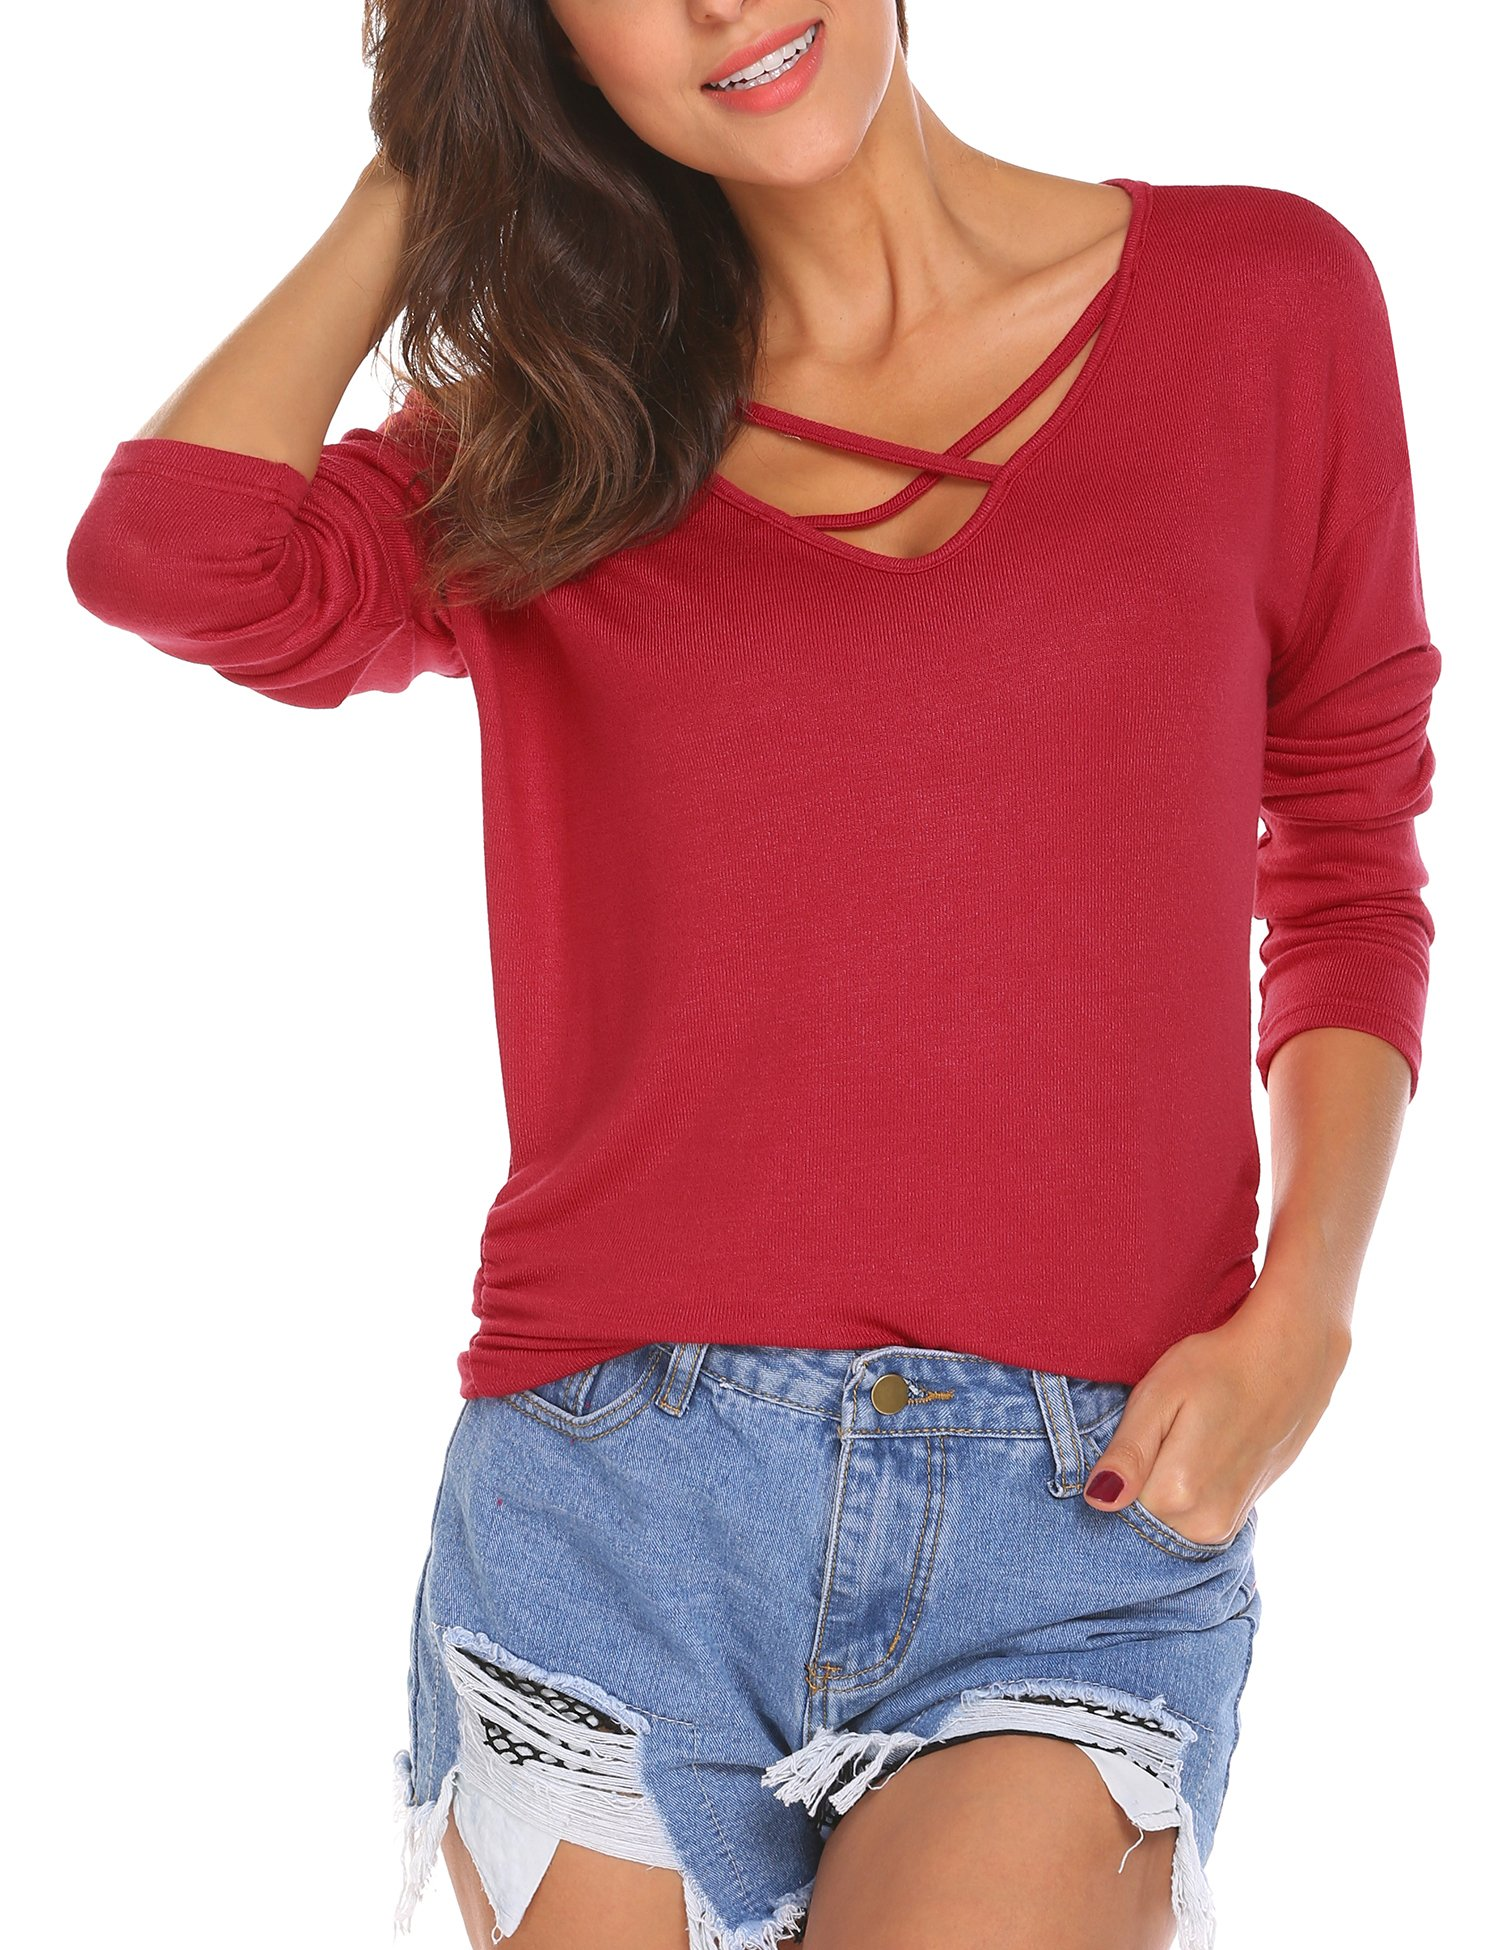 Hotouch Loose V Neck Sweater Women's Long Sleeve Knitted Pullover Casual Tops Jumper Knitwear Red M